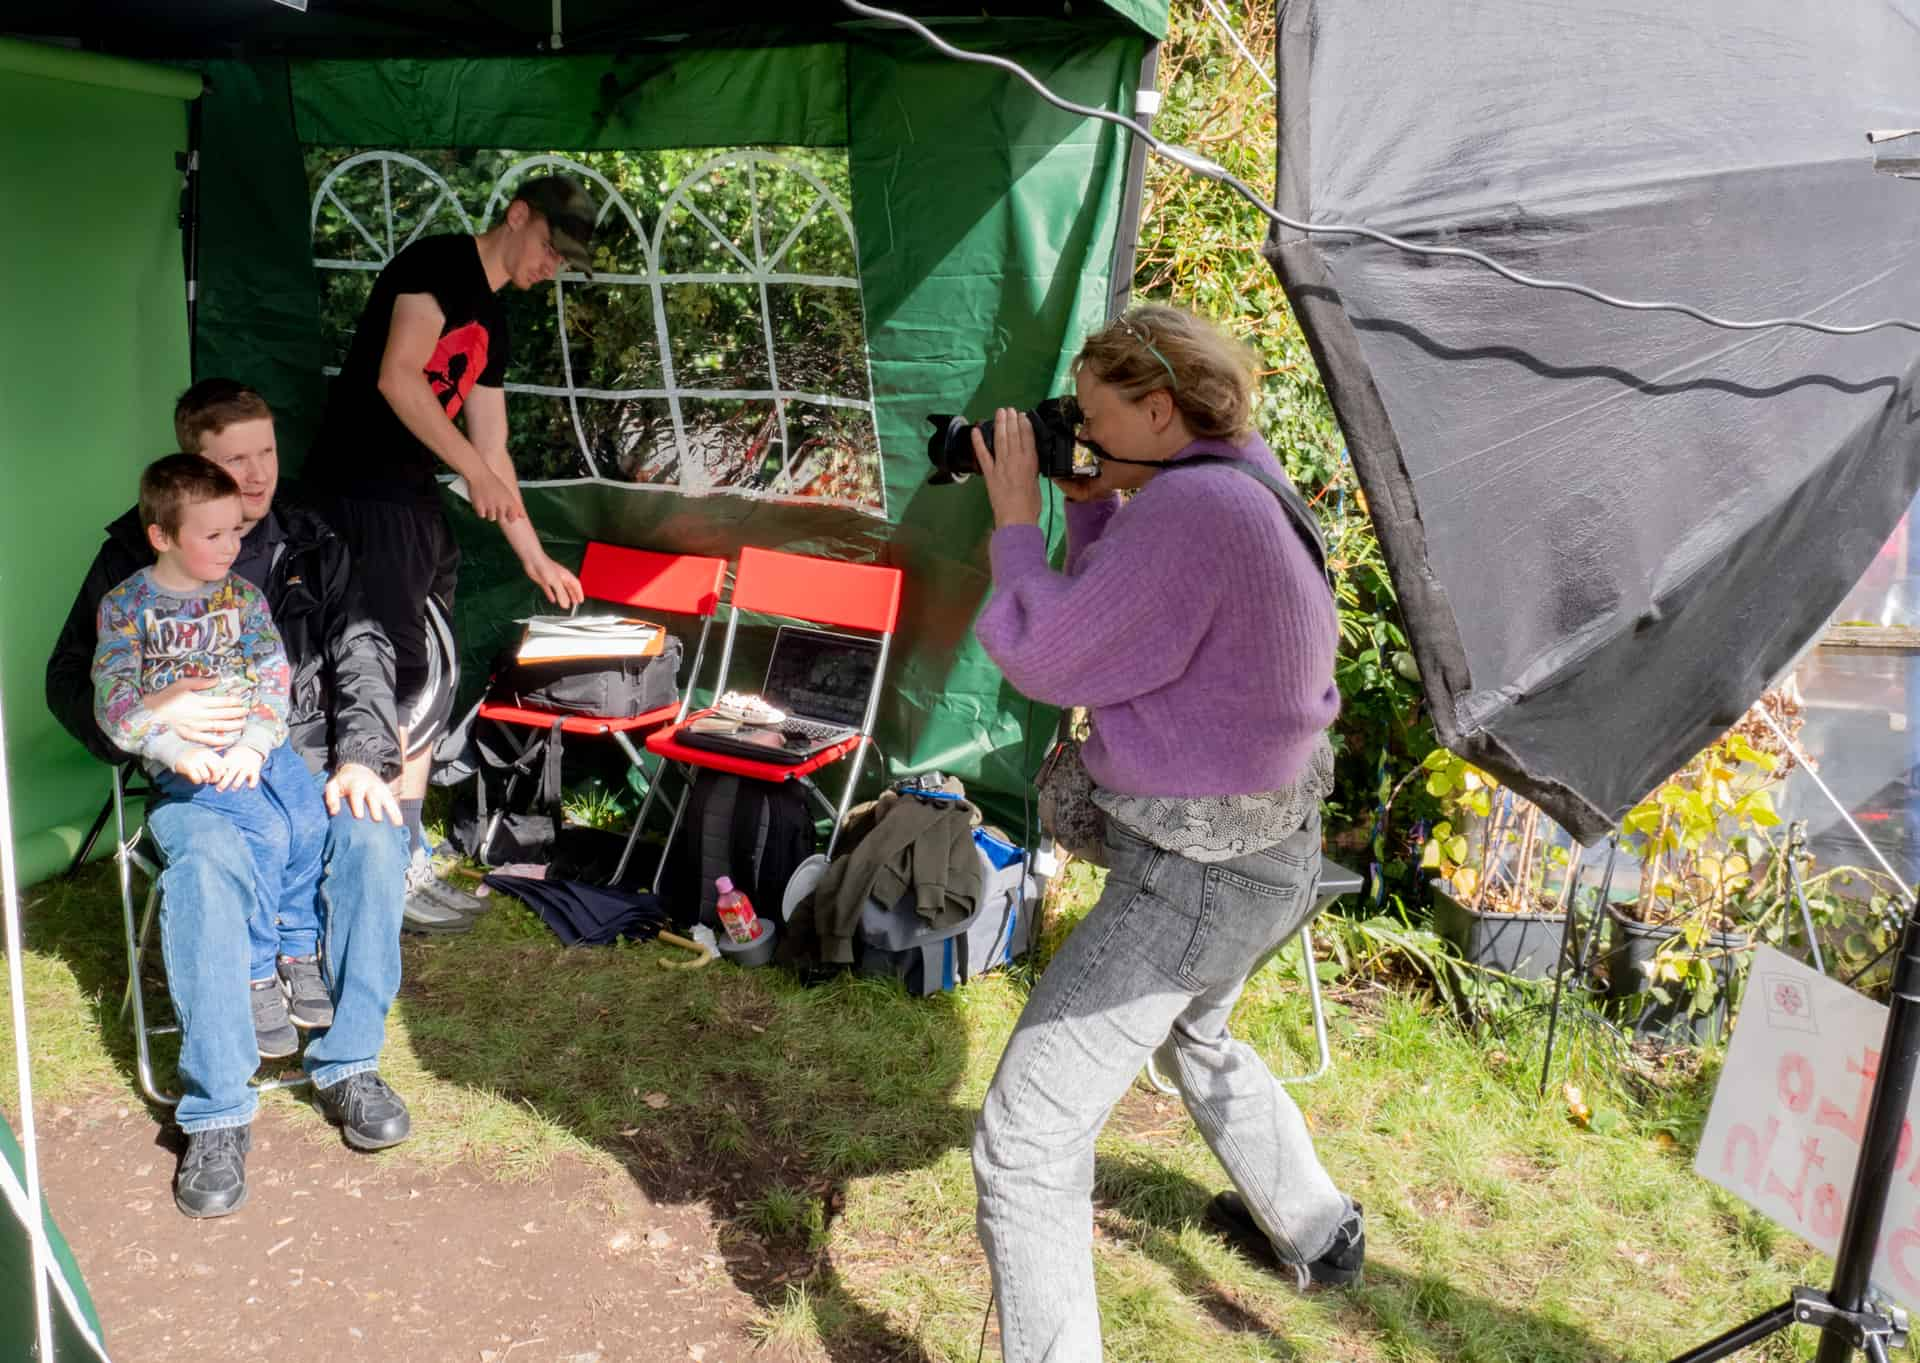 Caroline at work on the pop-up photography studio at Caldmore Community Gardens open day.